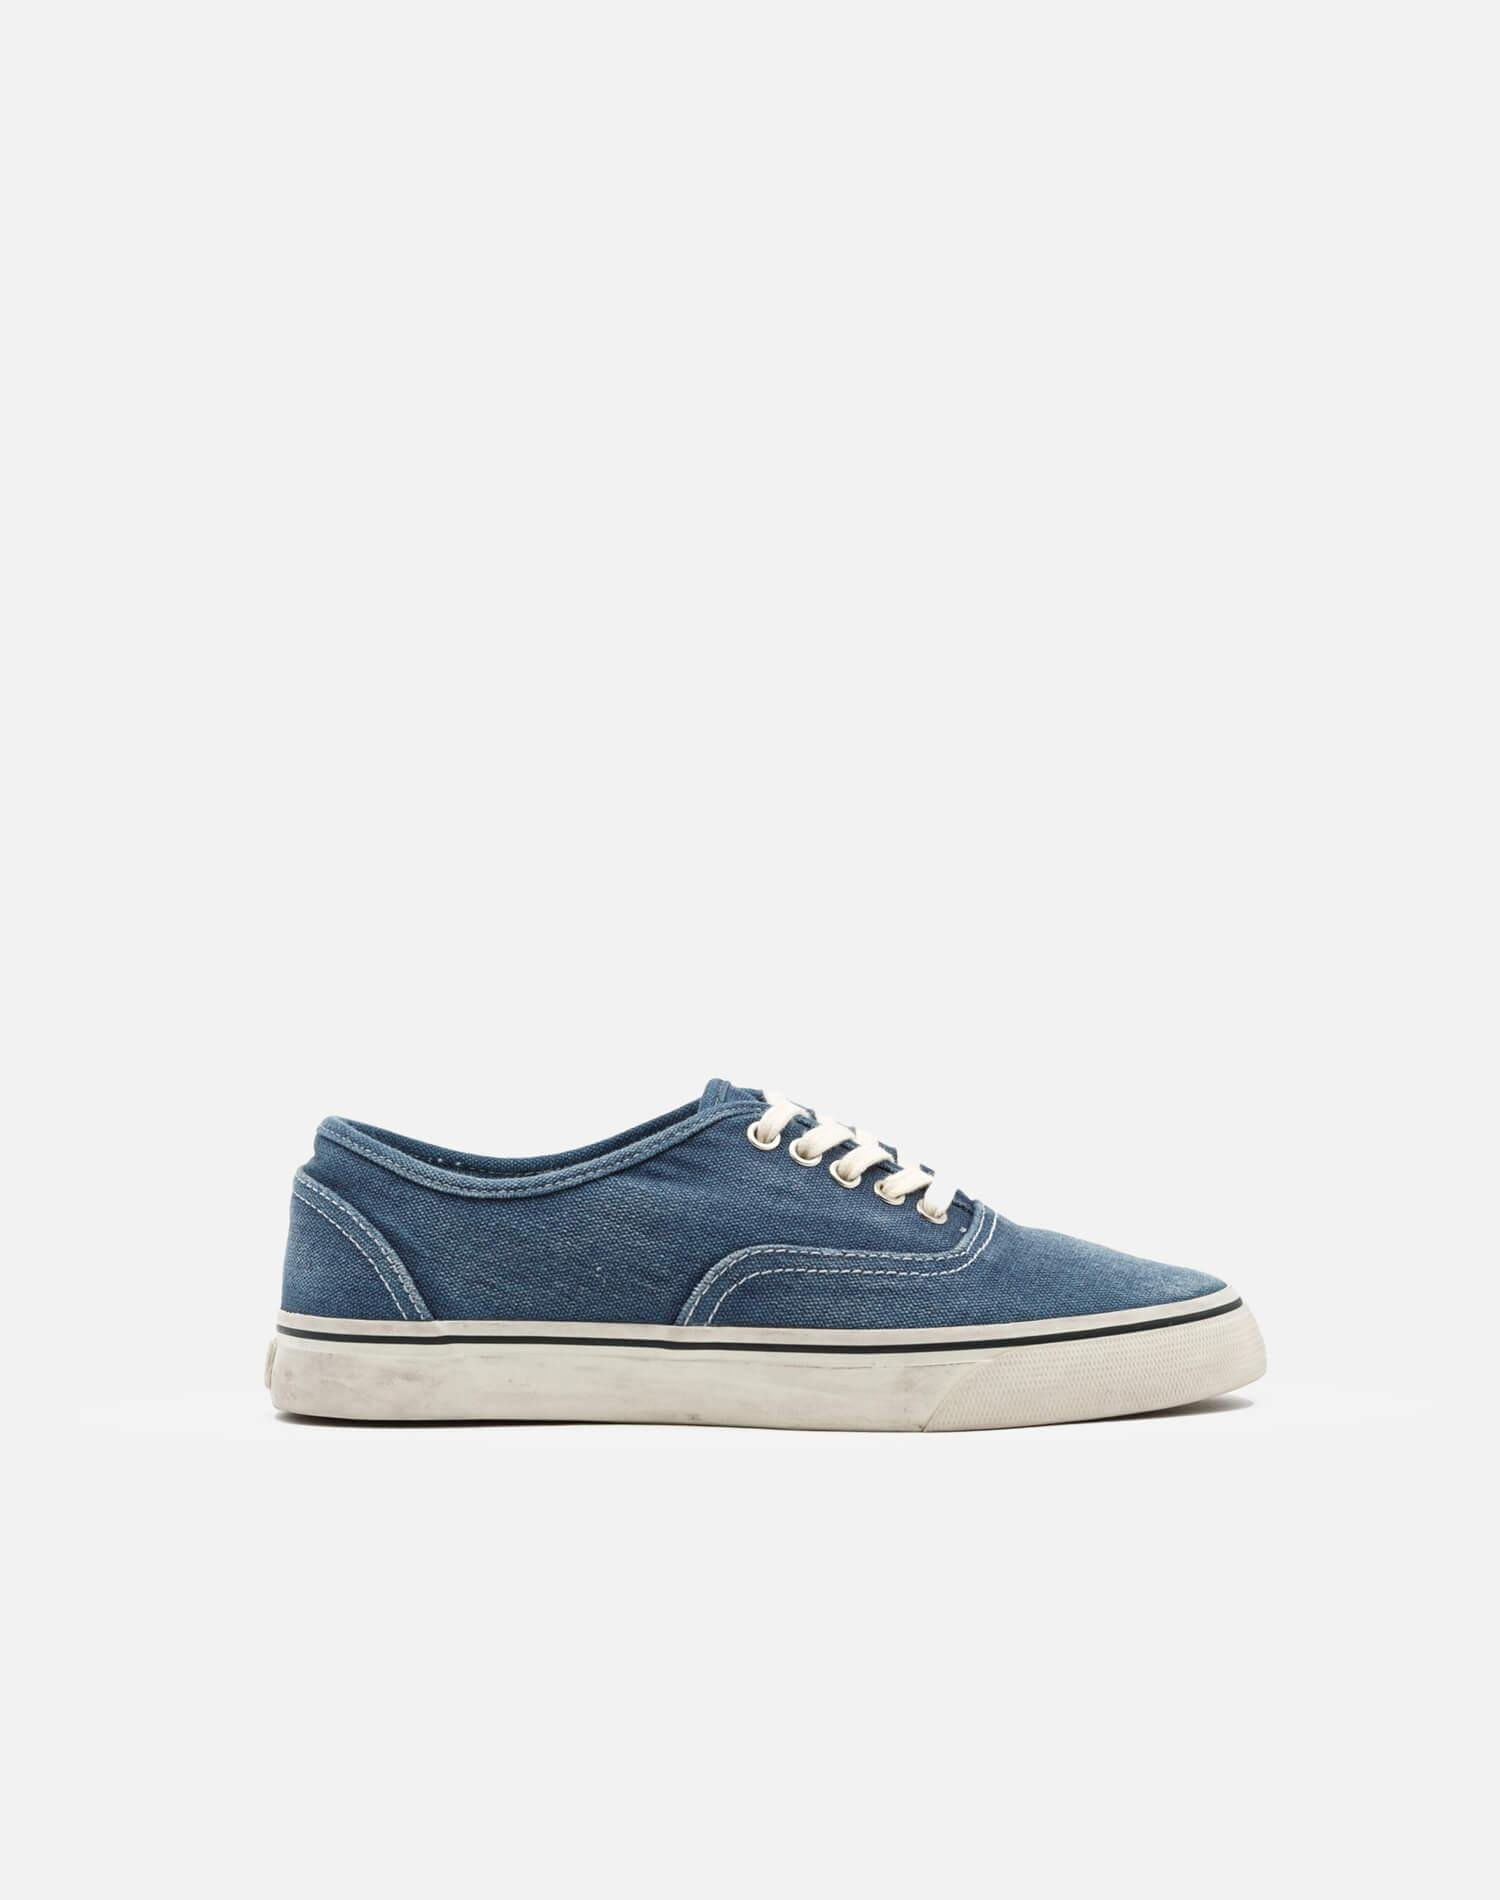 70s Low Top Skate - Faded Navy